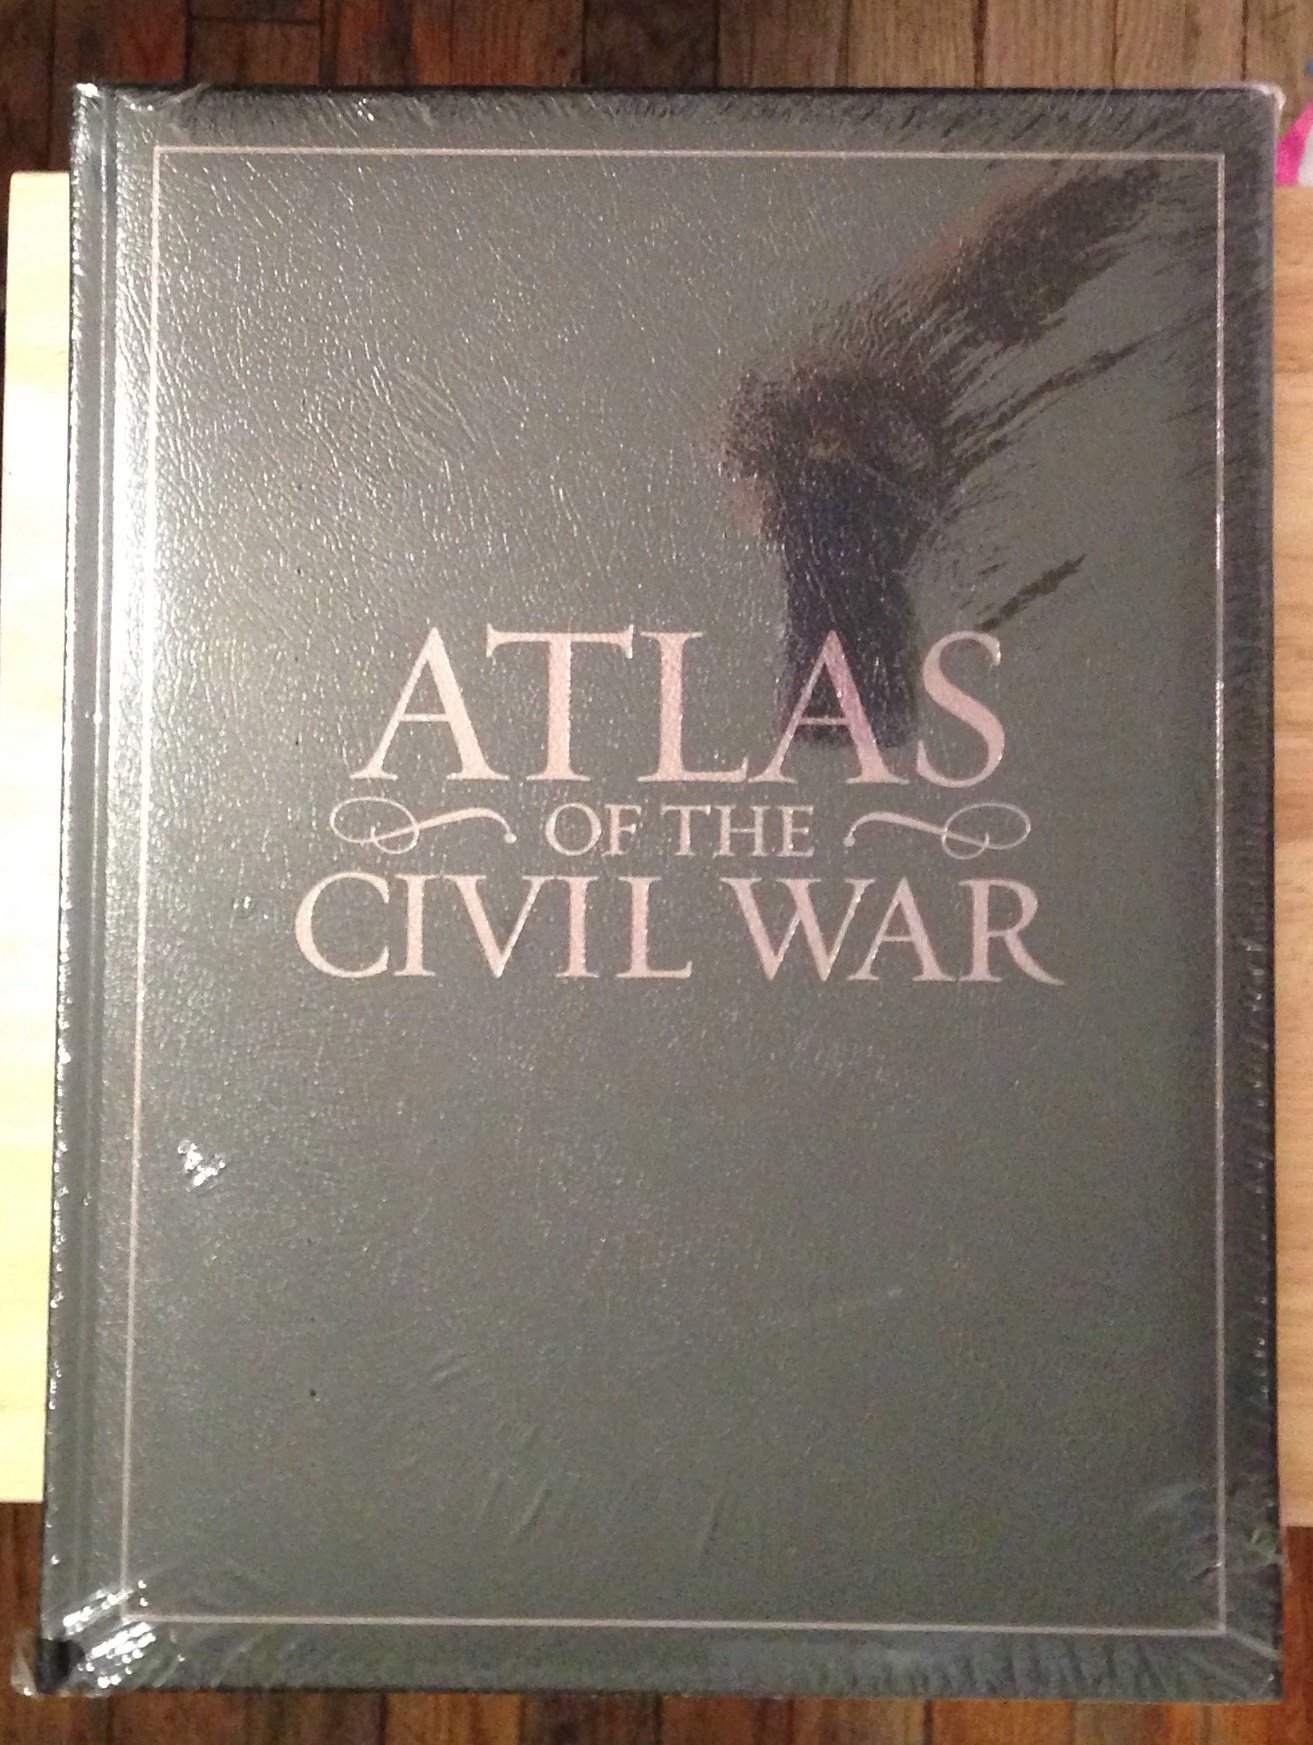 Atlas of the Civil War, Neil Kagan